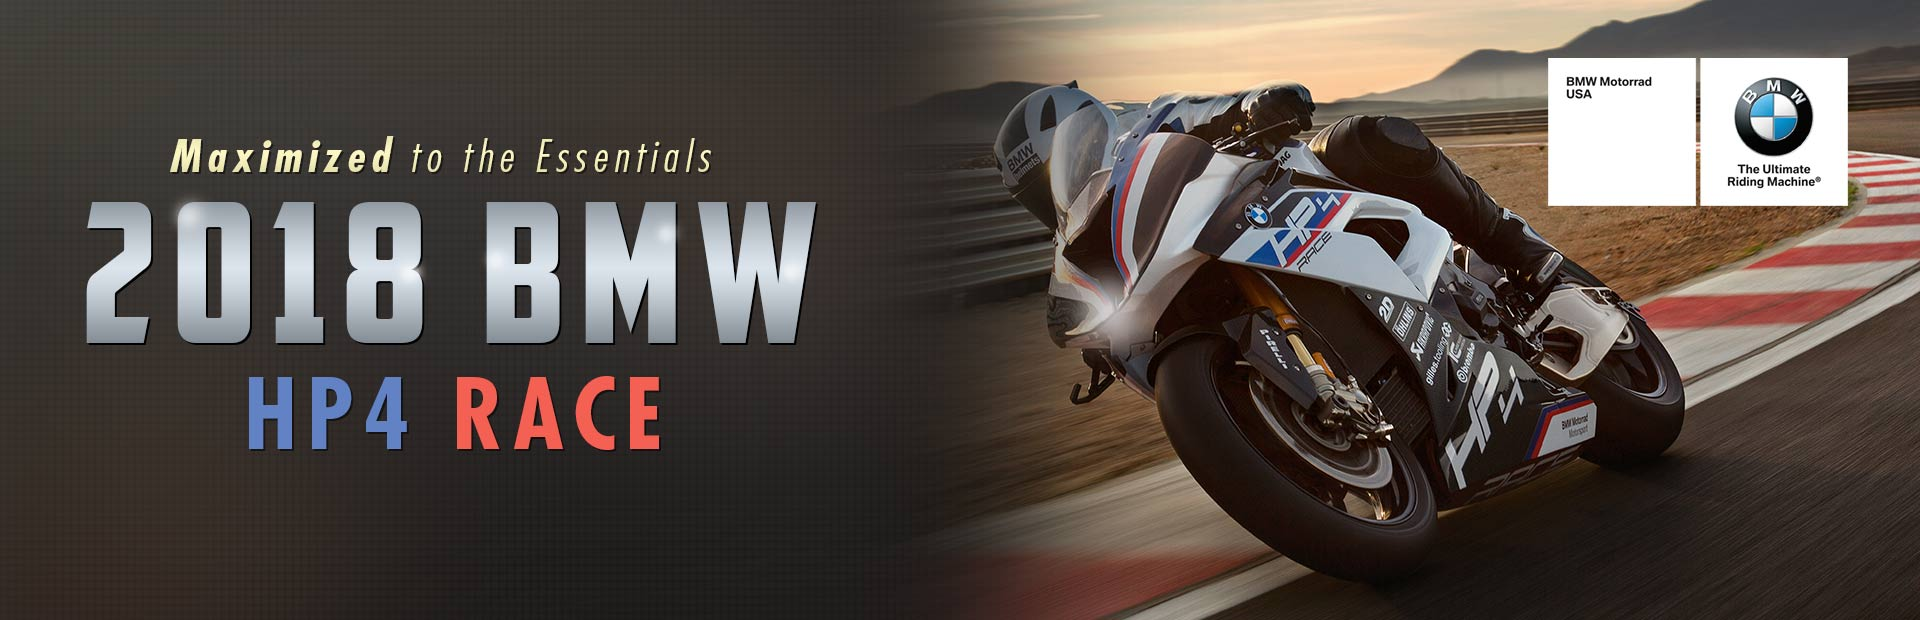 2018 BMW HP4 RACE: Click here to view the model.